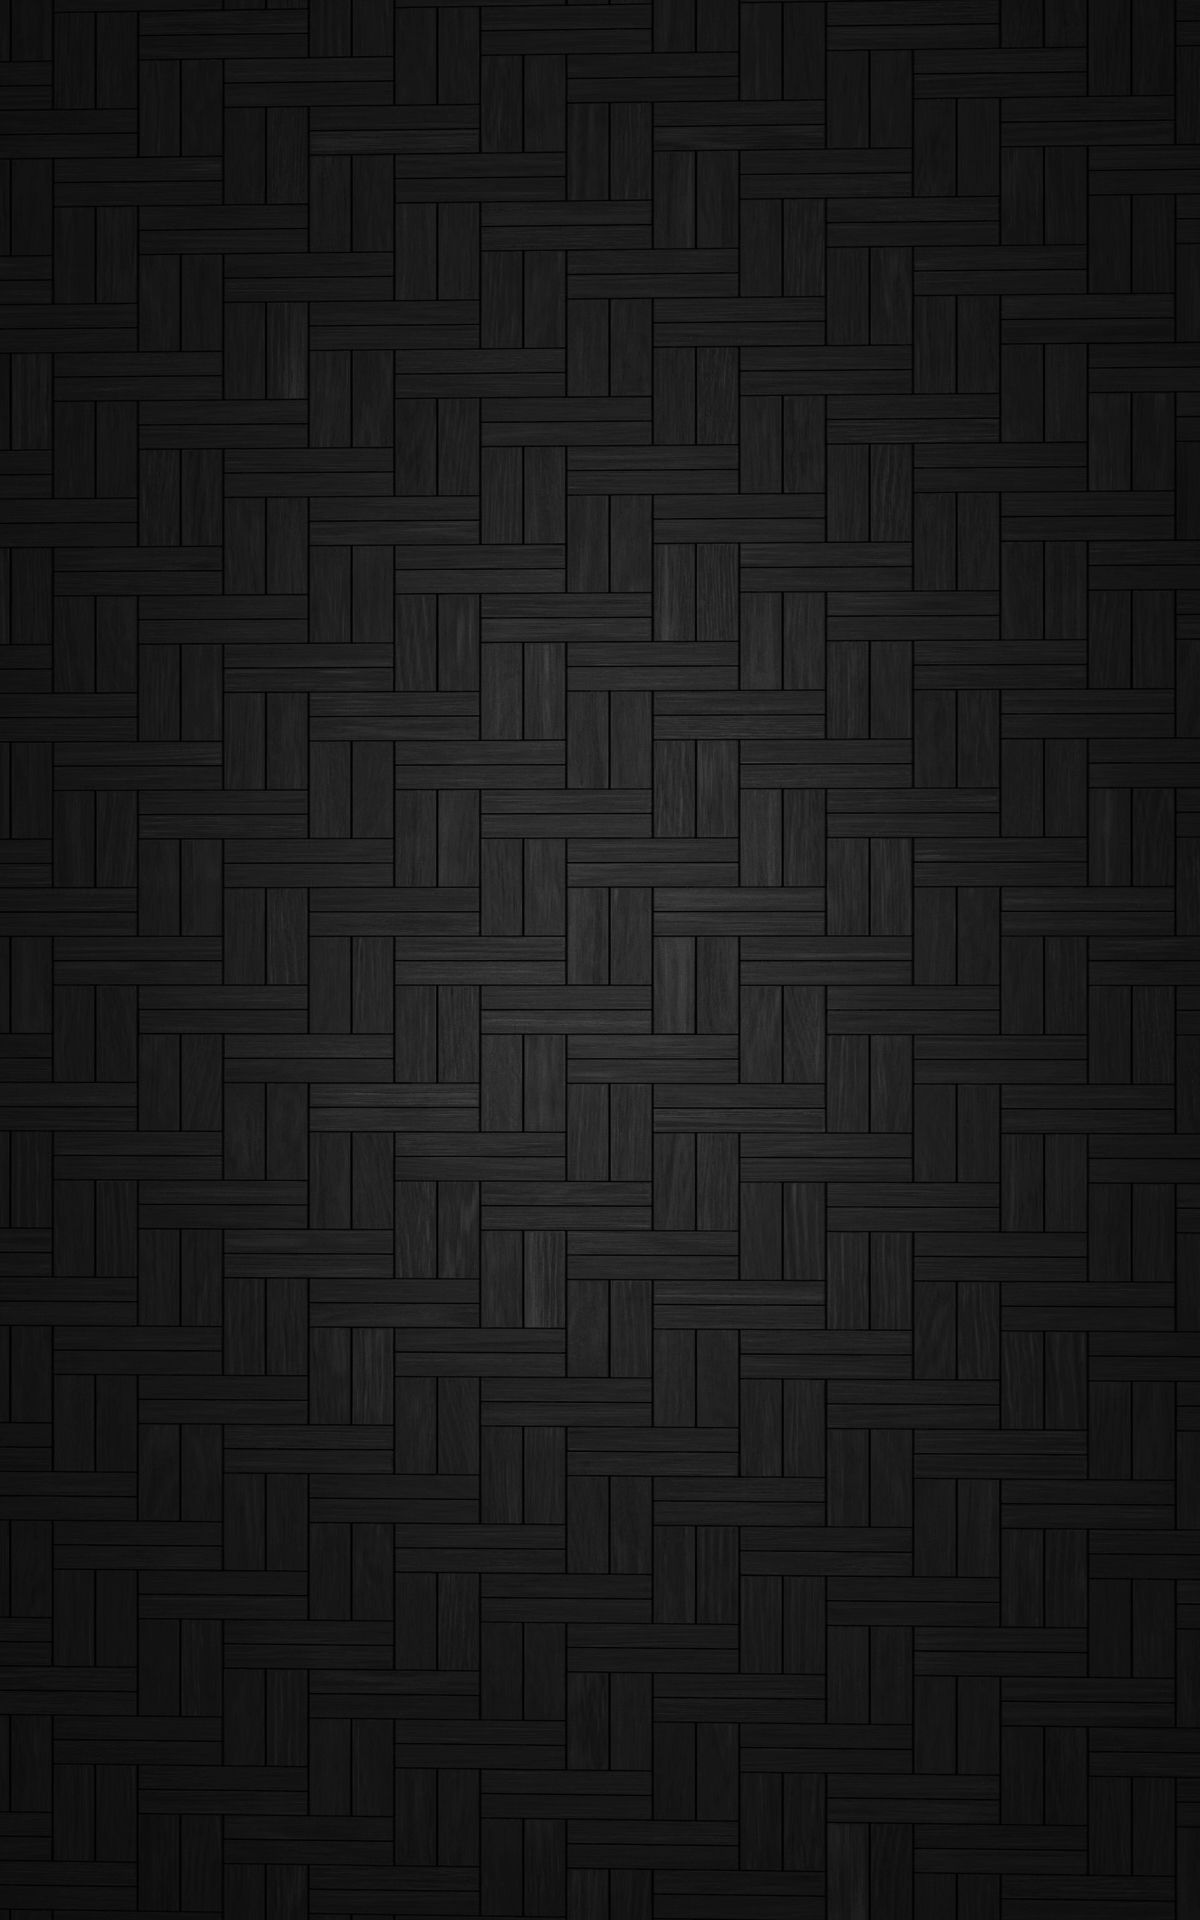 Black Background For Iphone 6s Best Iphone Wallpaper Black Wallpaper Black Wallpaper Iphone Background Hd Wallpaper